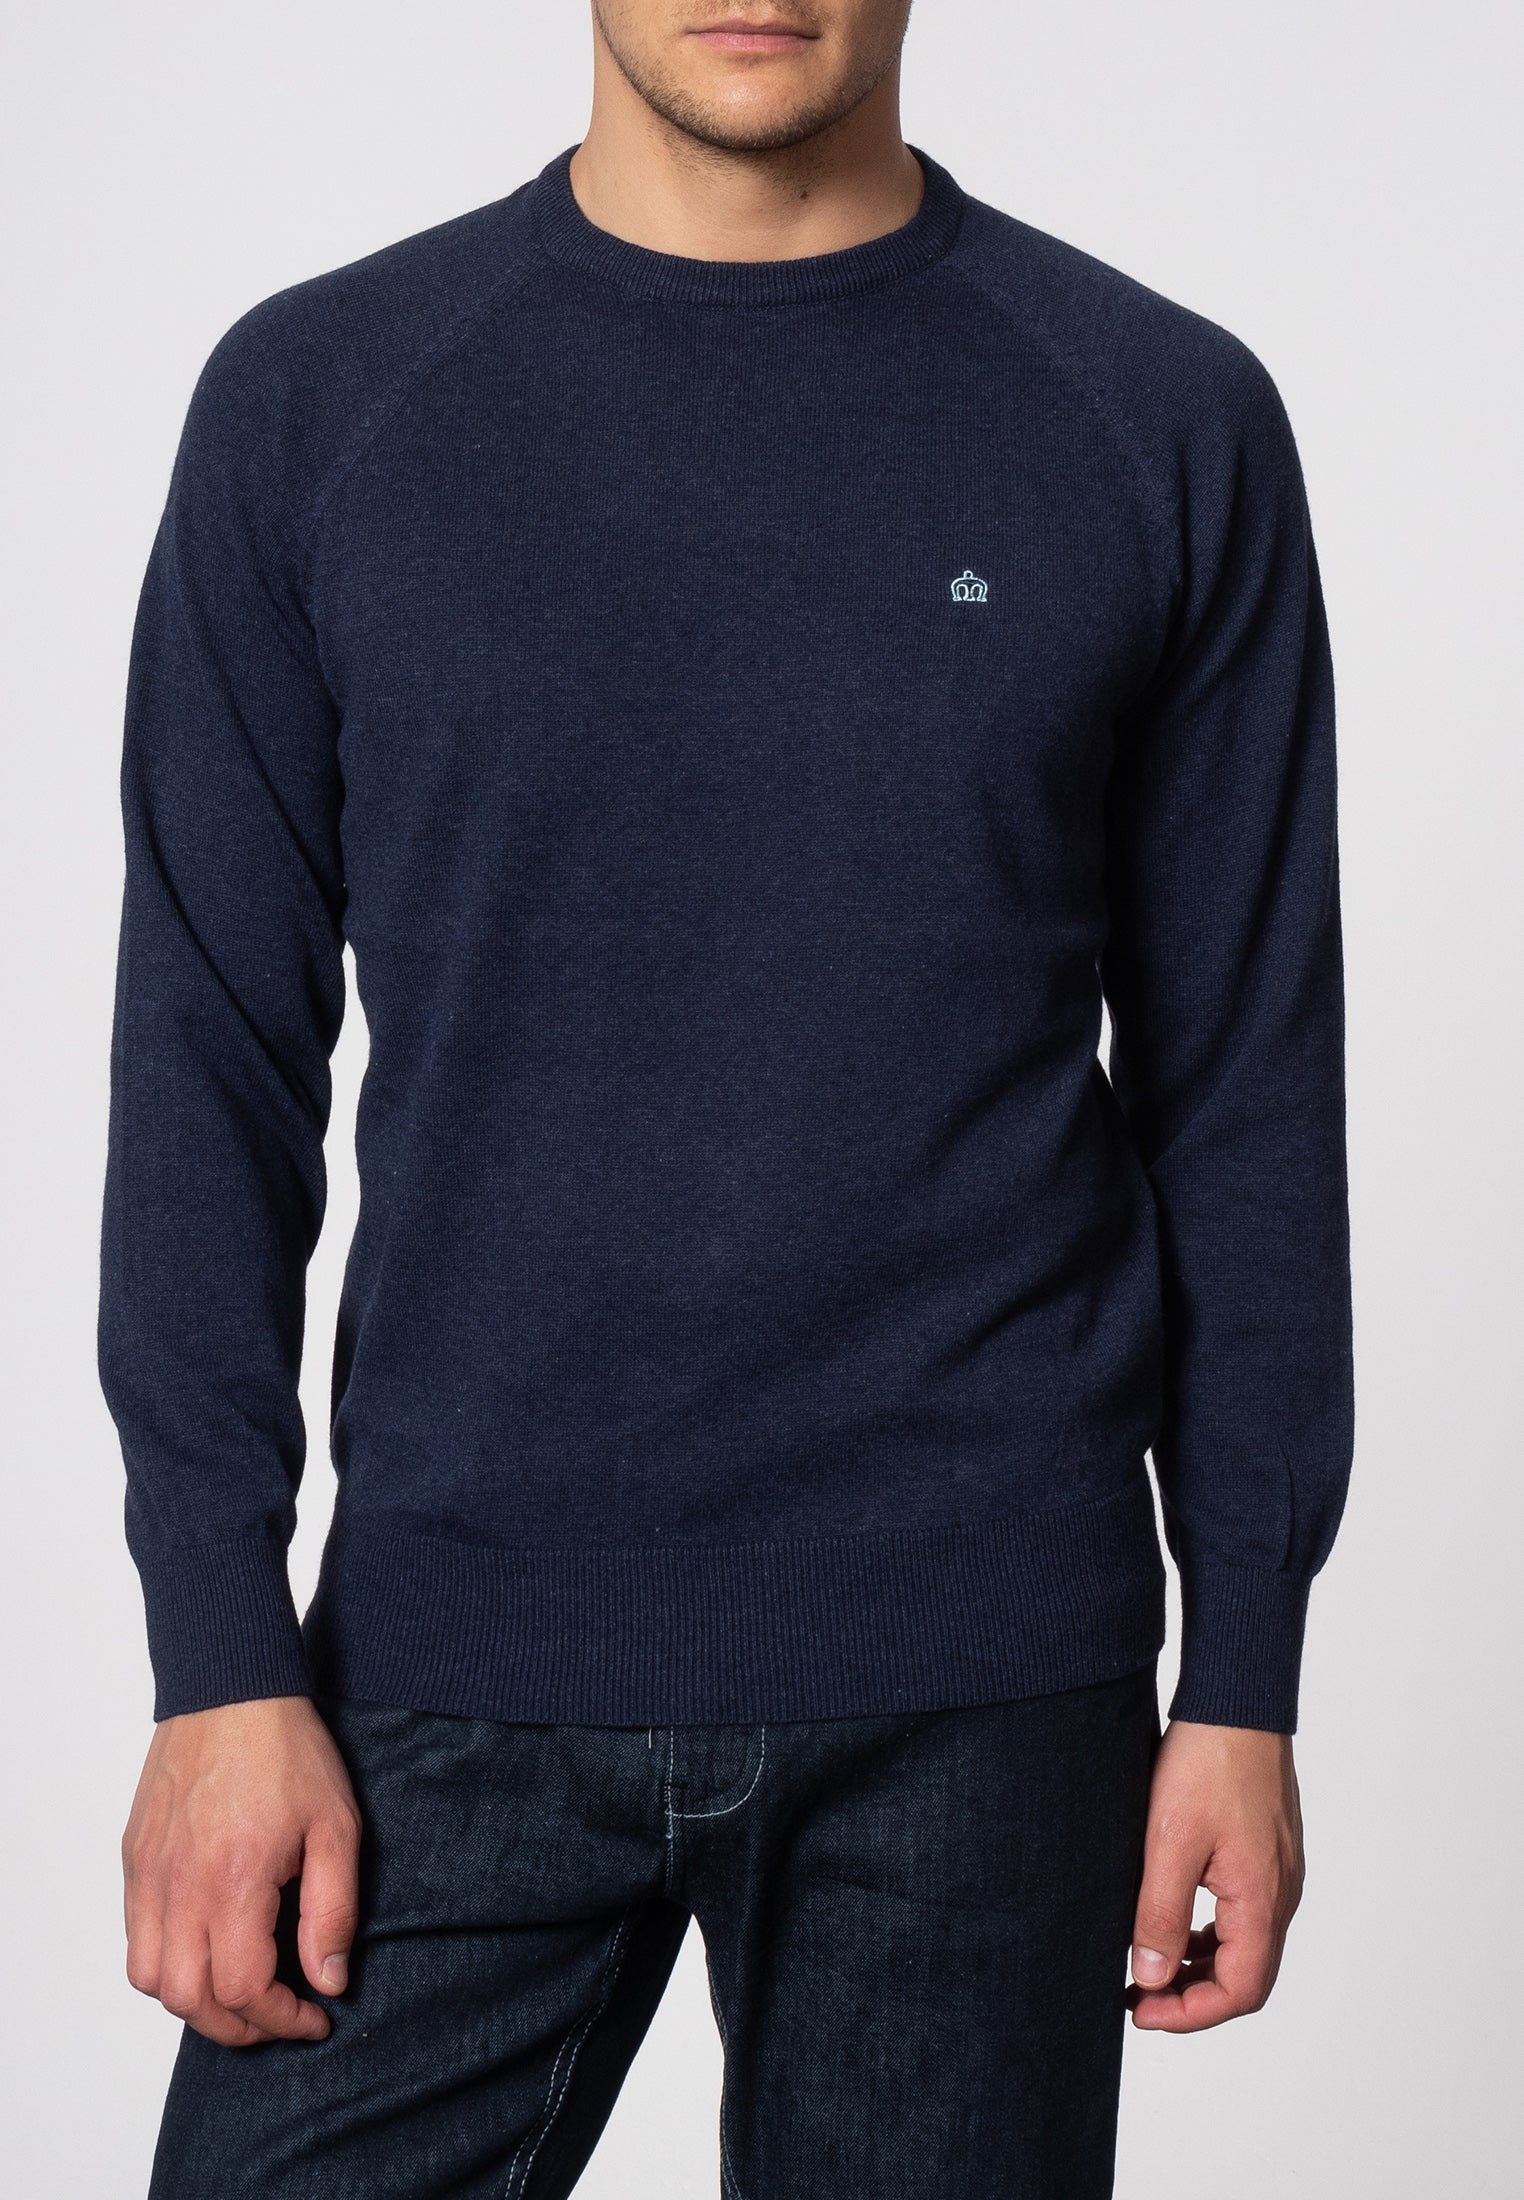 Berty Cashmere Blend Jumper - Merc London